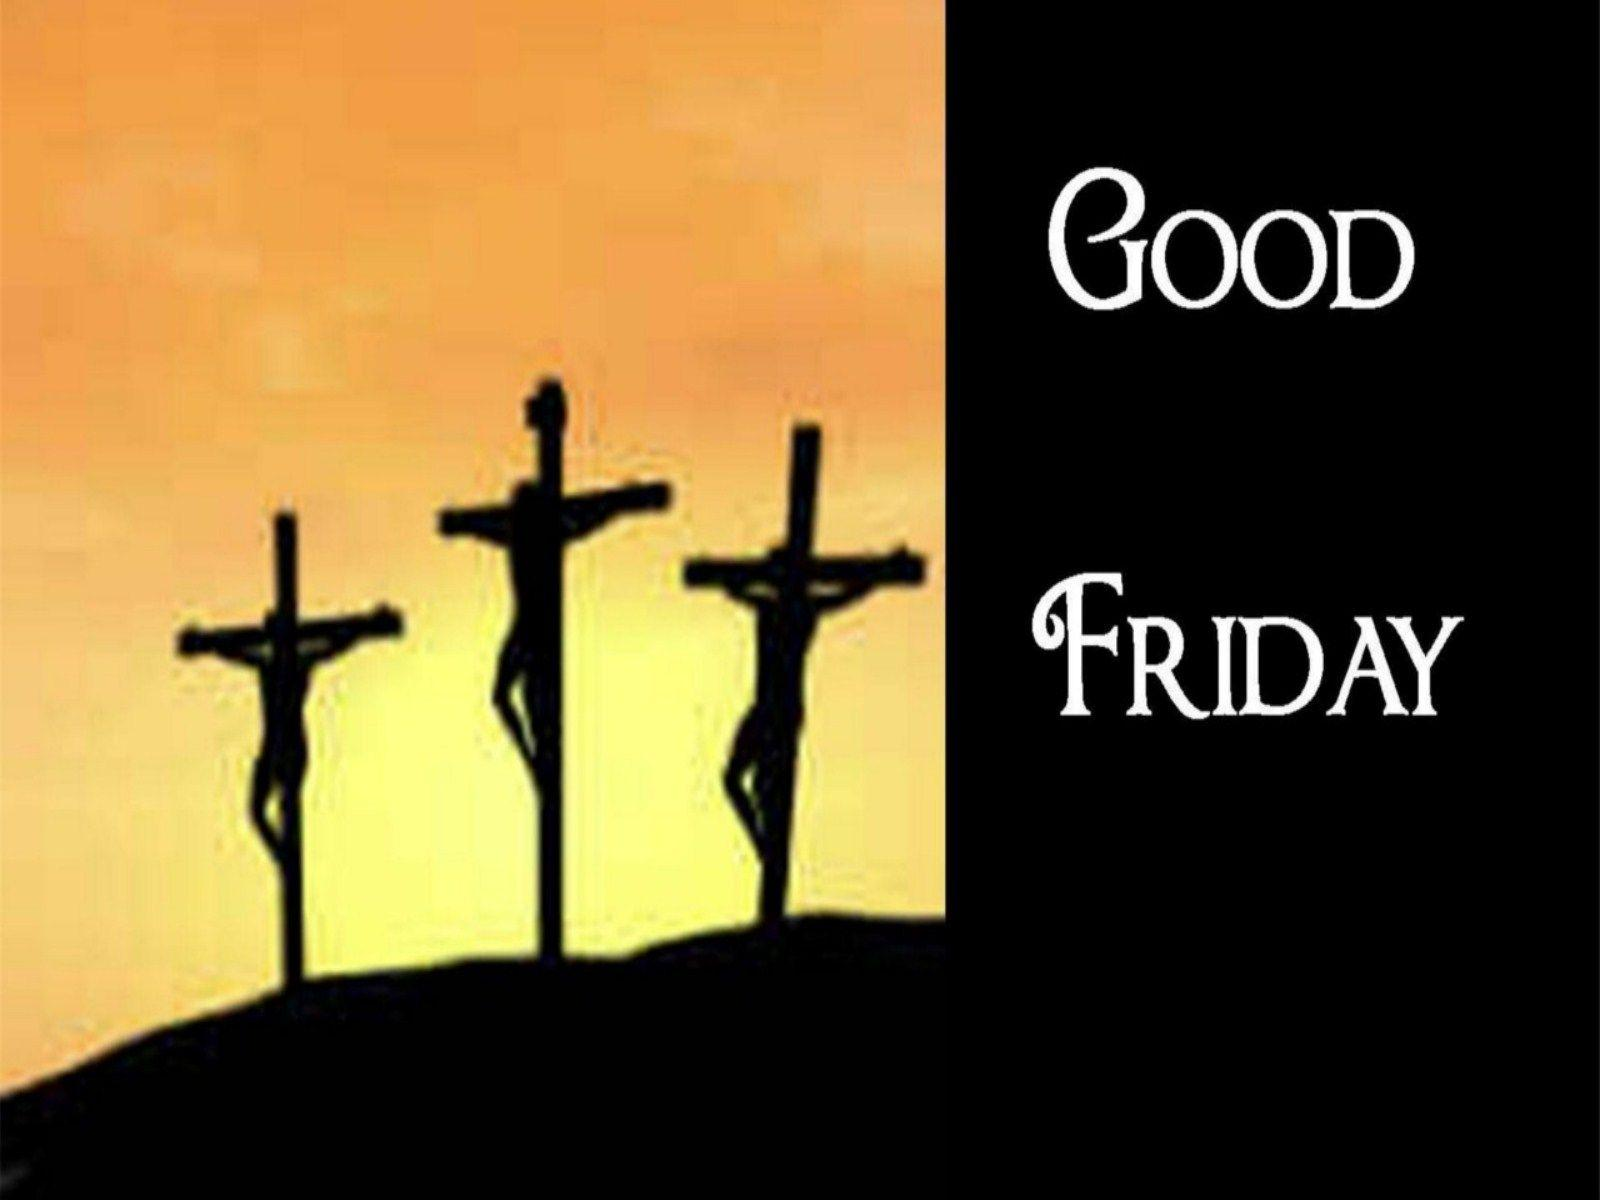 good friday backgrounds wallpapers - photo #10